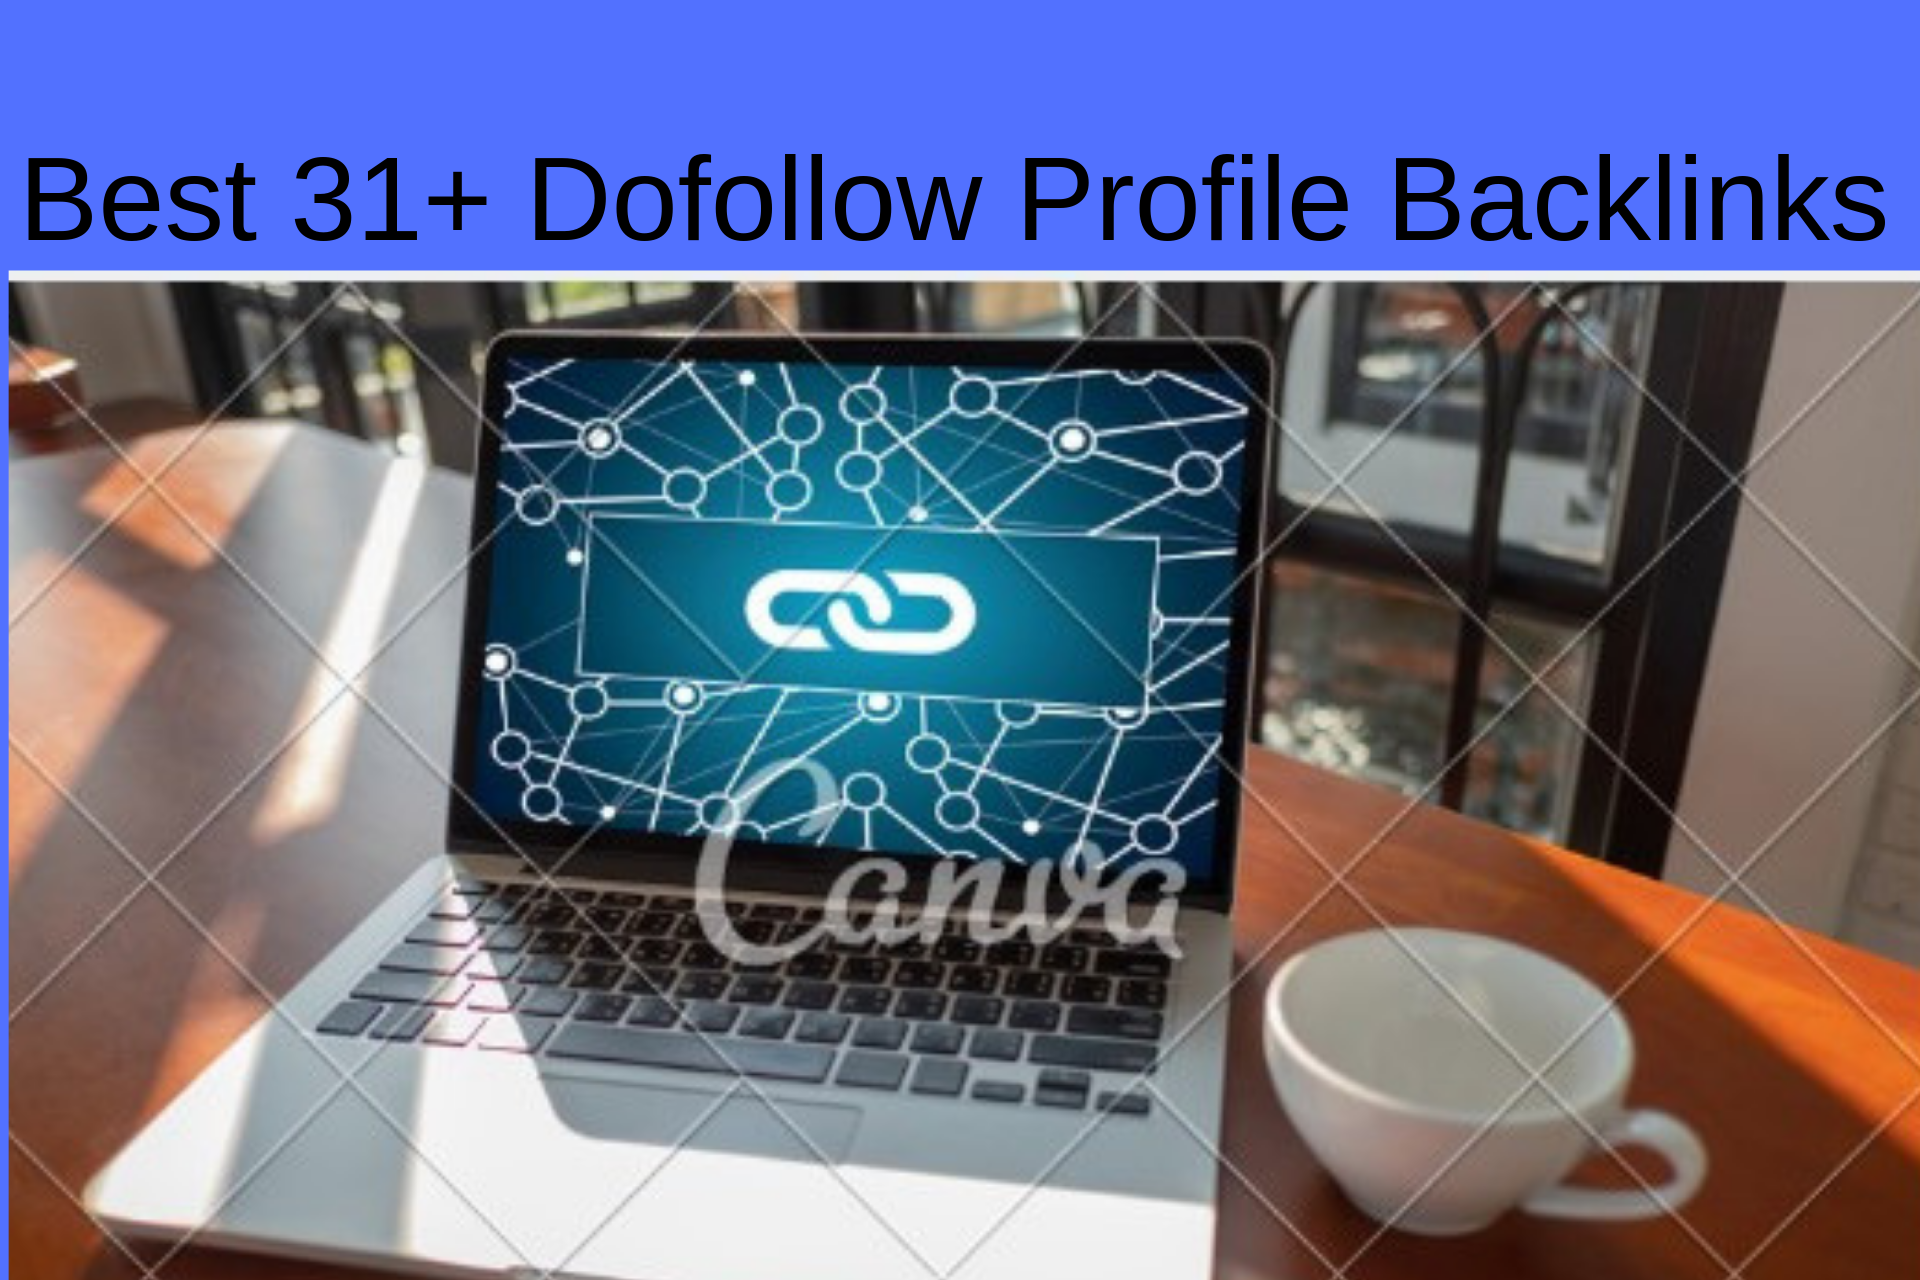 Best 31+ Dofollow Profile Backlinks to increase ranki...